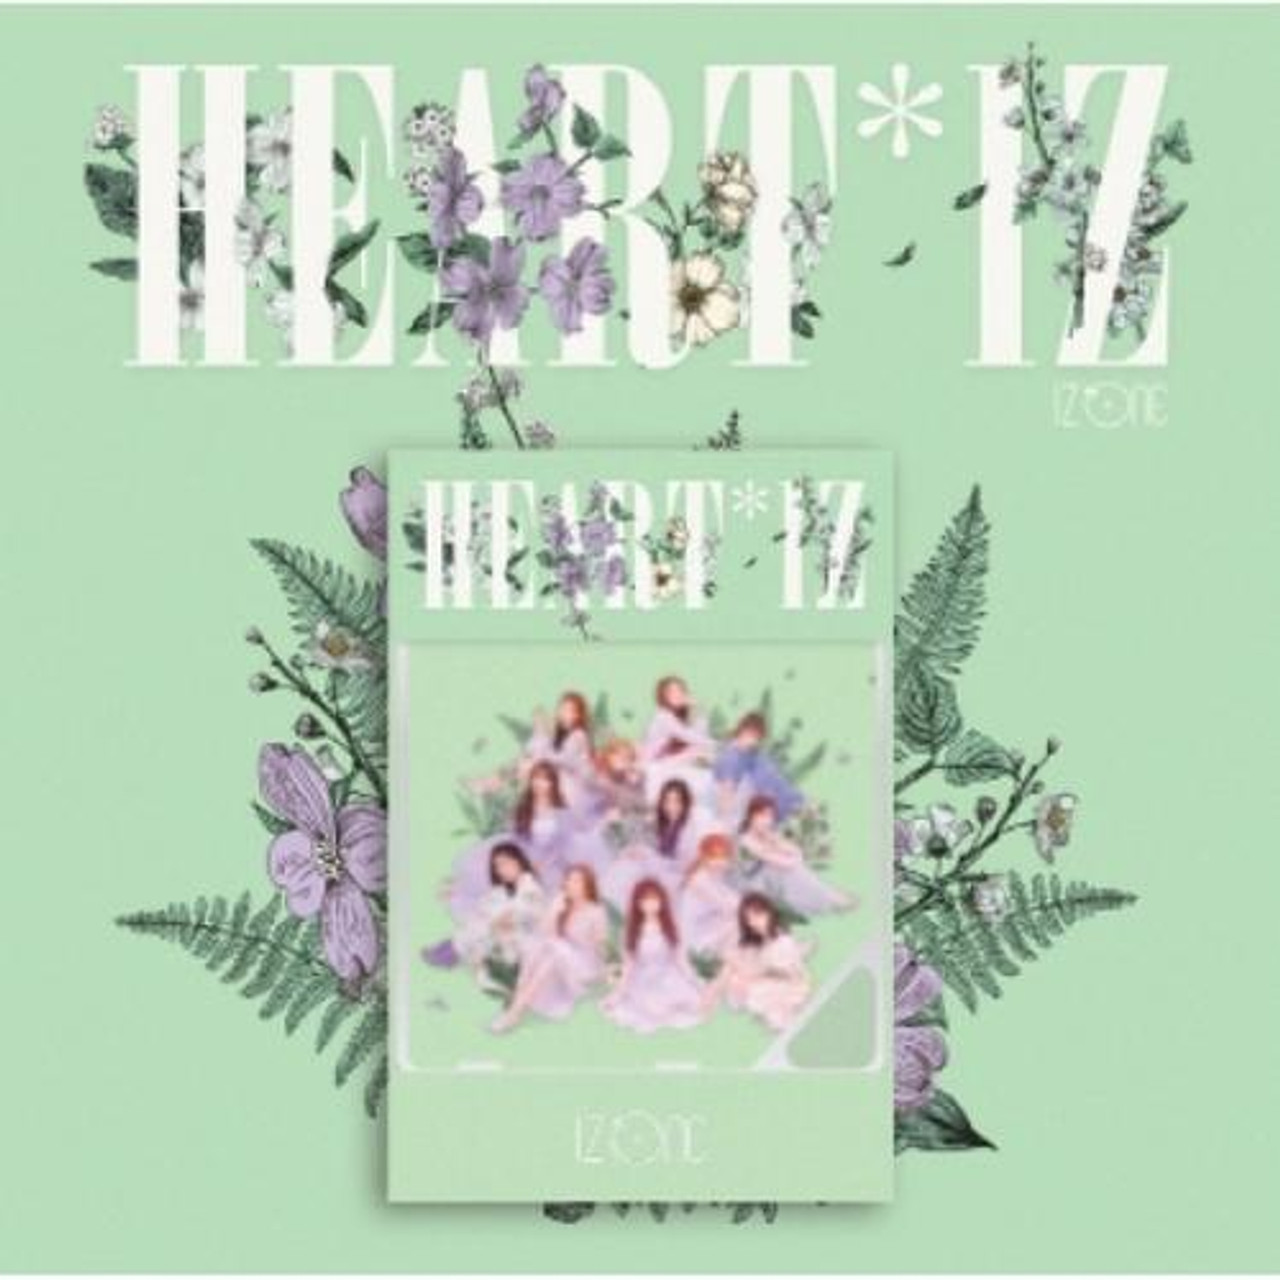 IZ*ONE - 2nd Mini [HEART*IZ] (A: Violeta/ B:SapphireVer.) (Kihno Album -ONLY DHL Shipping)